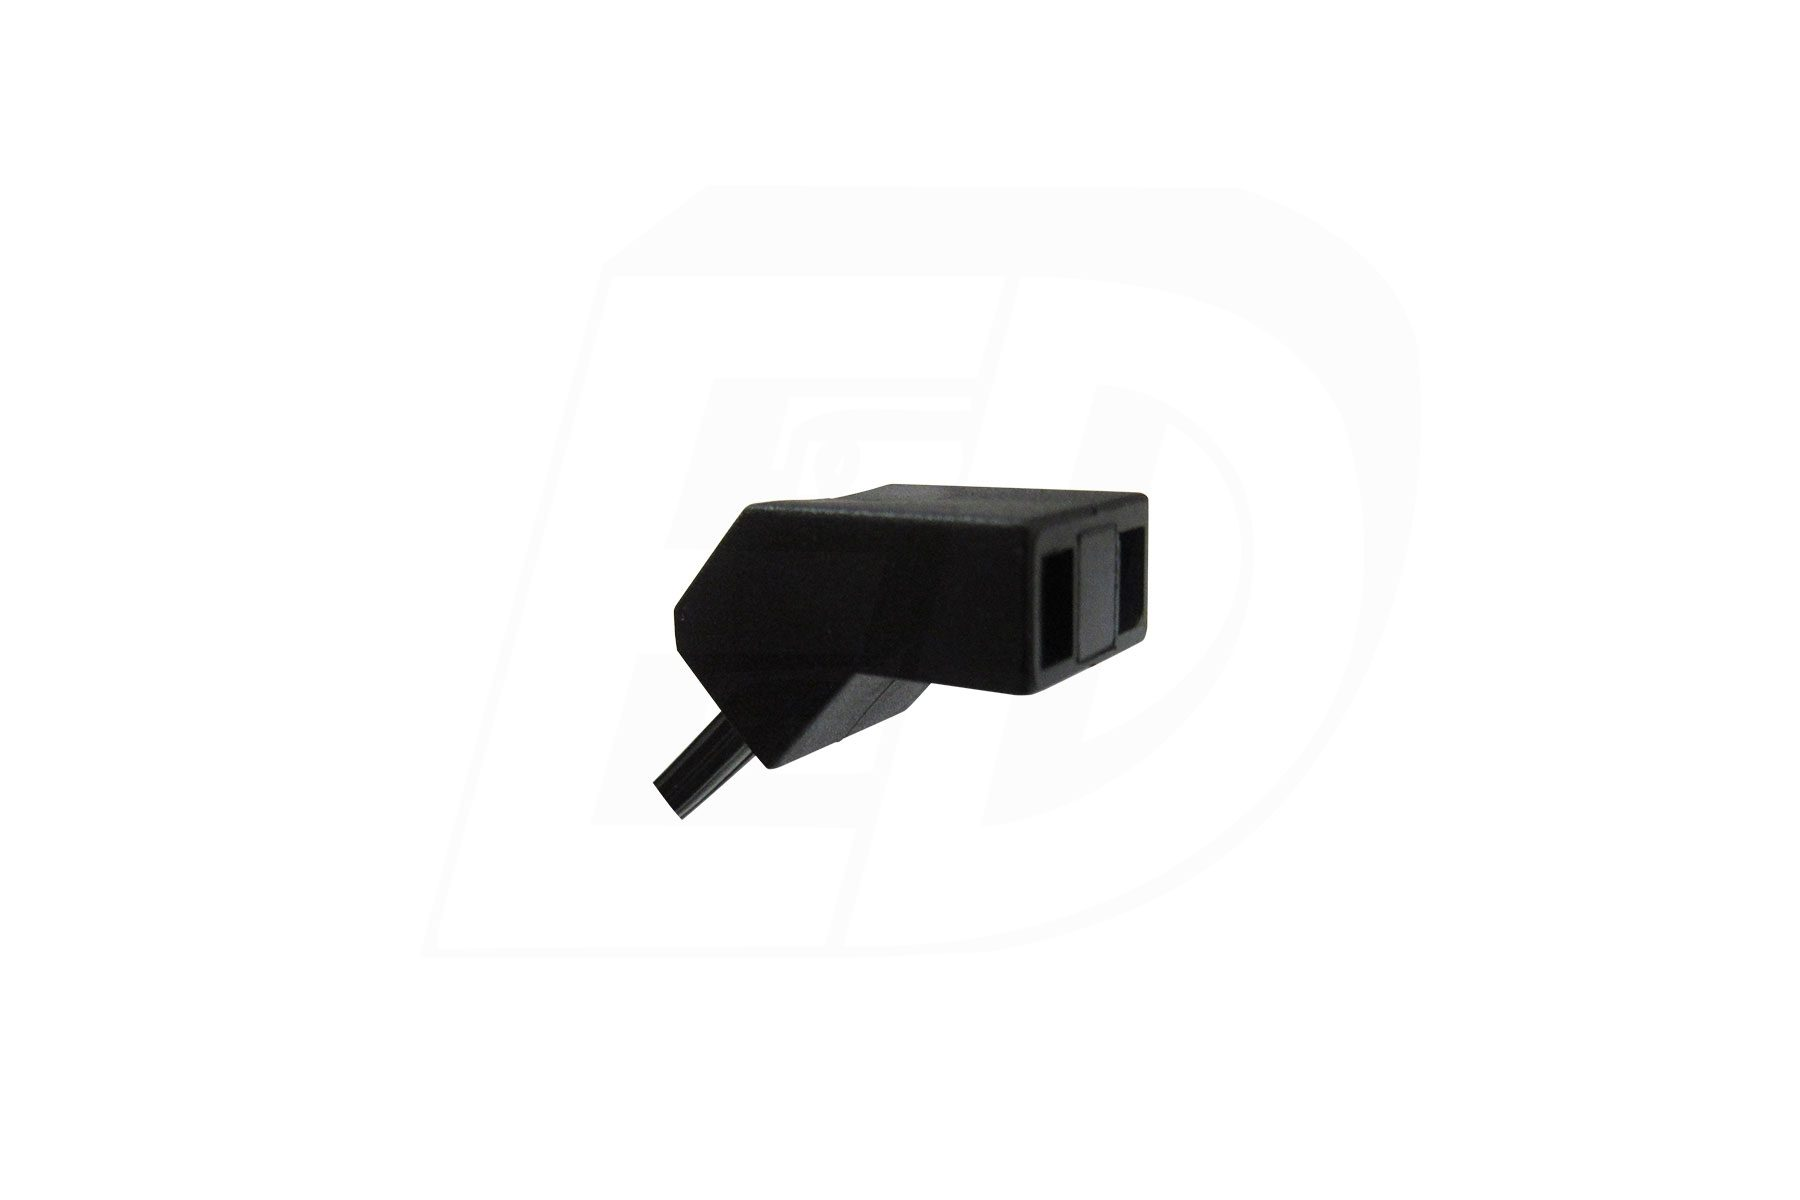 3 Ft. Cord for Axial Fan